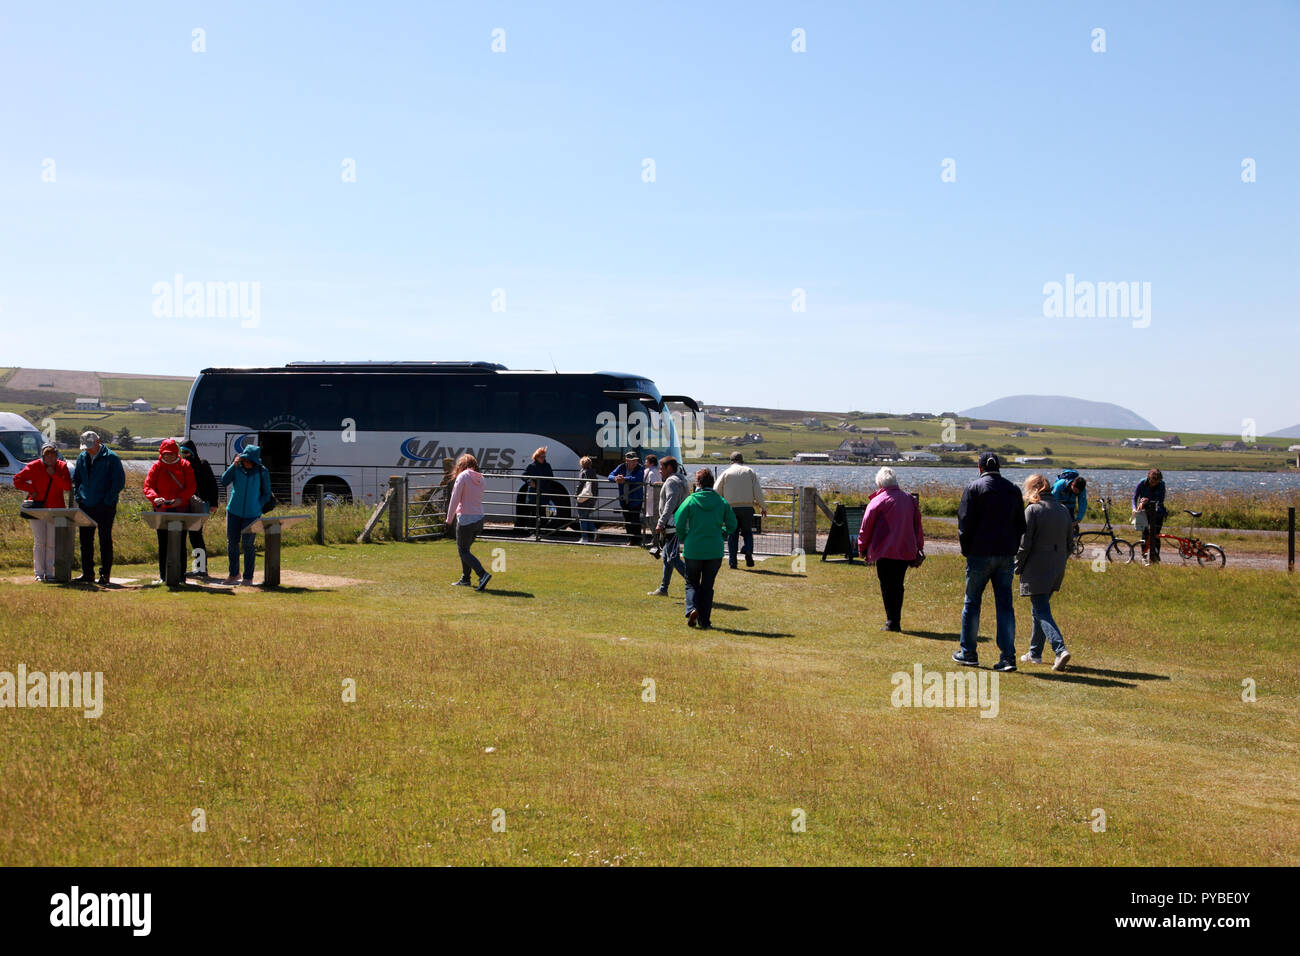 Visitors returning to their coach after a visit to the Standing Stones of Stenness, a Neolithic monument on Orkney, Scotland - Stock Image